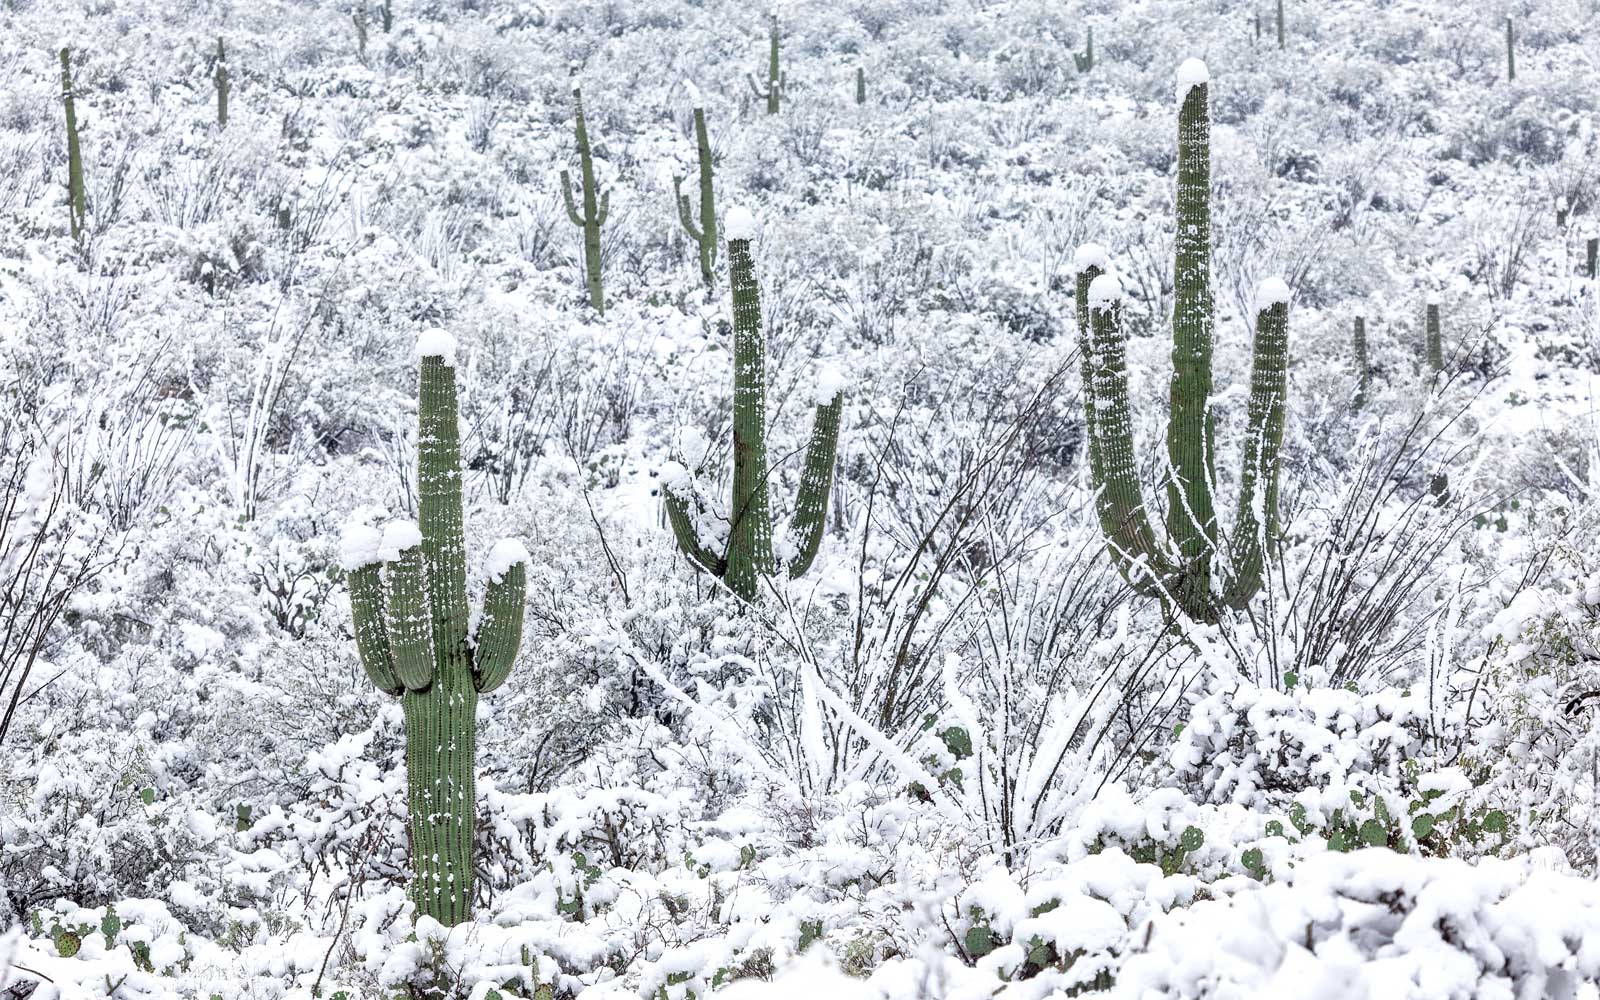 Snow on cacti in Tucson, Arizona